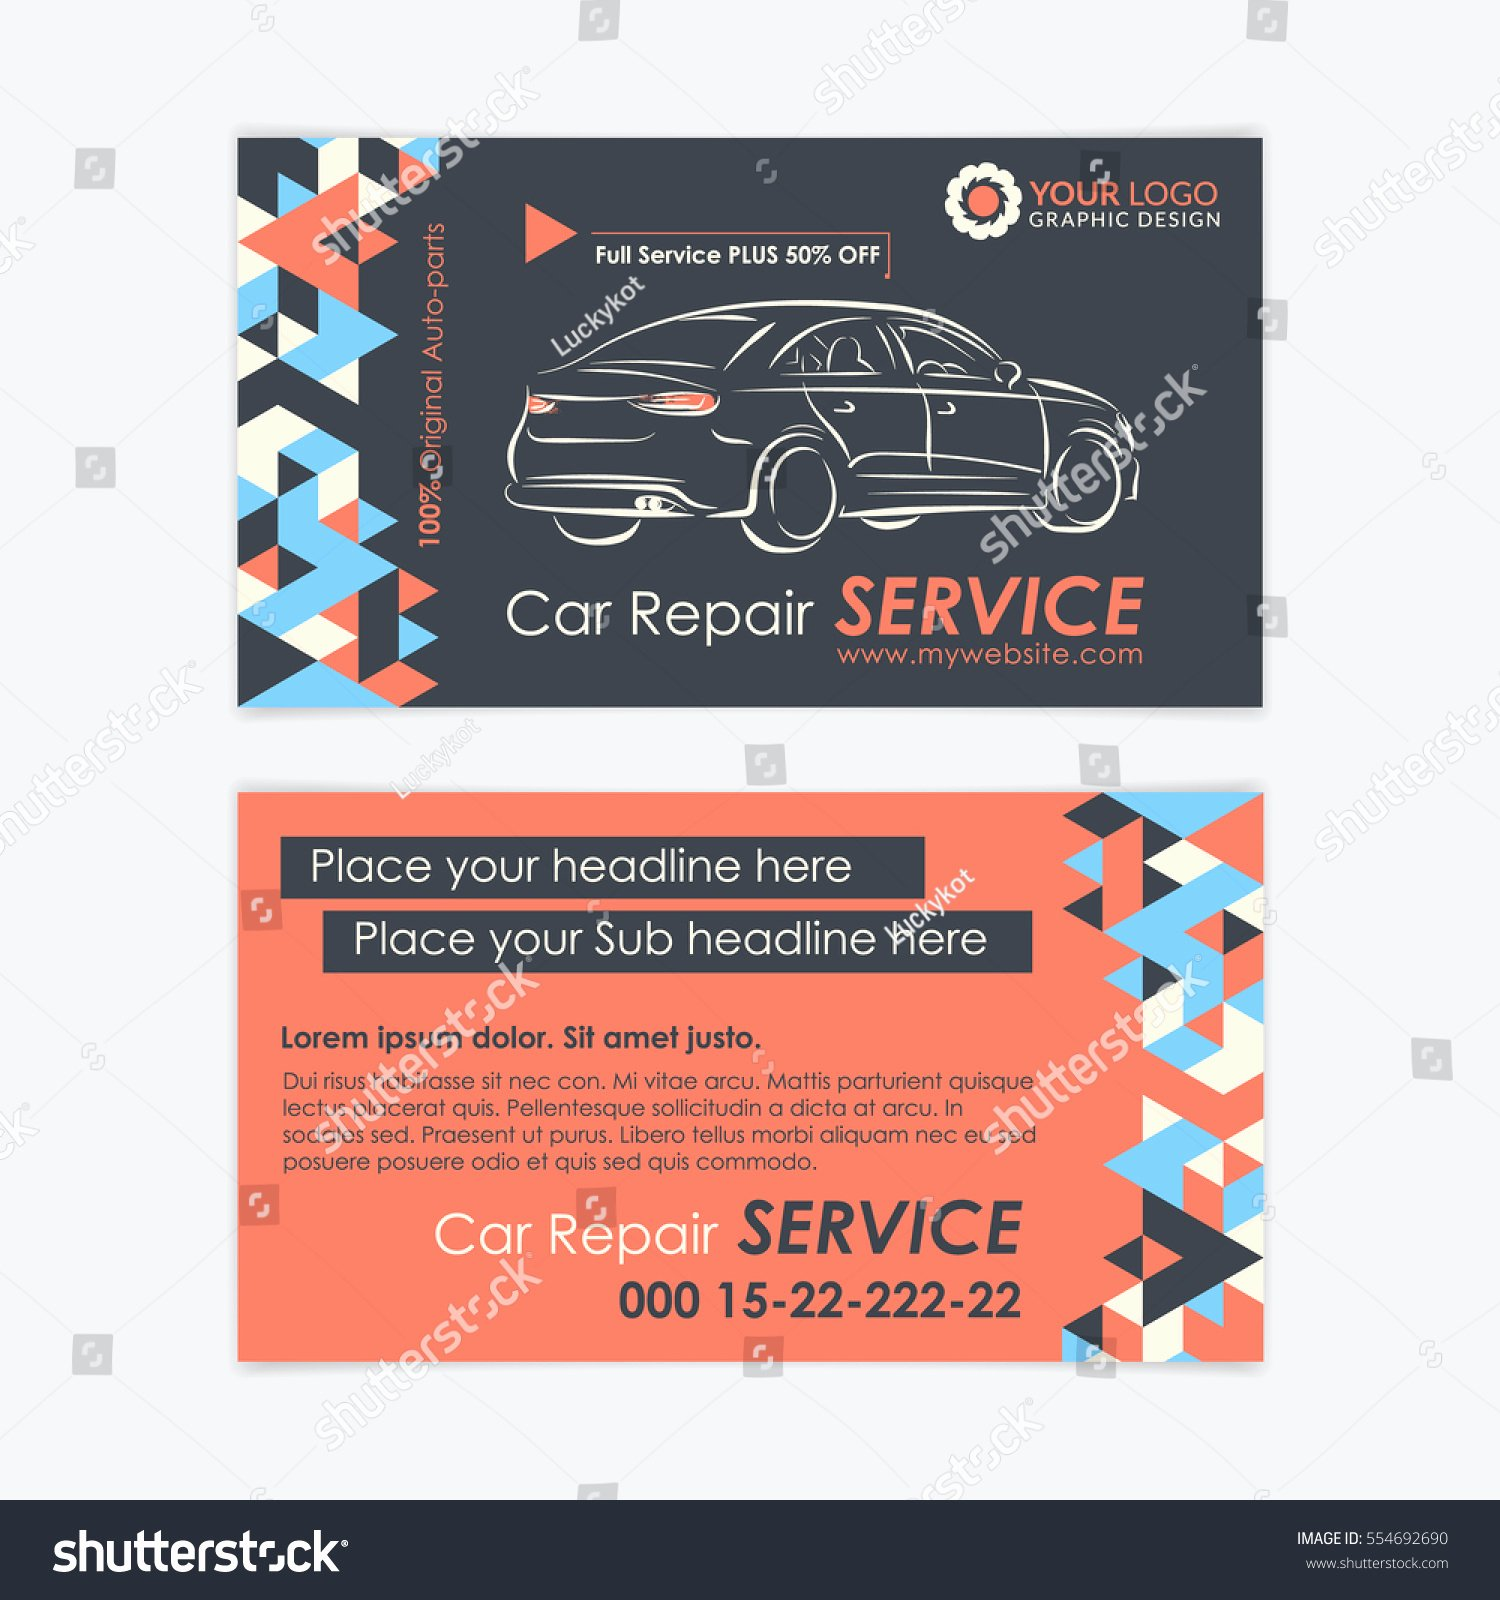 Car Service Business Cards Awesome Automotive Service Business Card Template Car Stock Vector Shutterstock